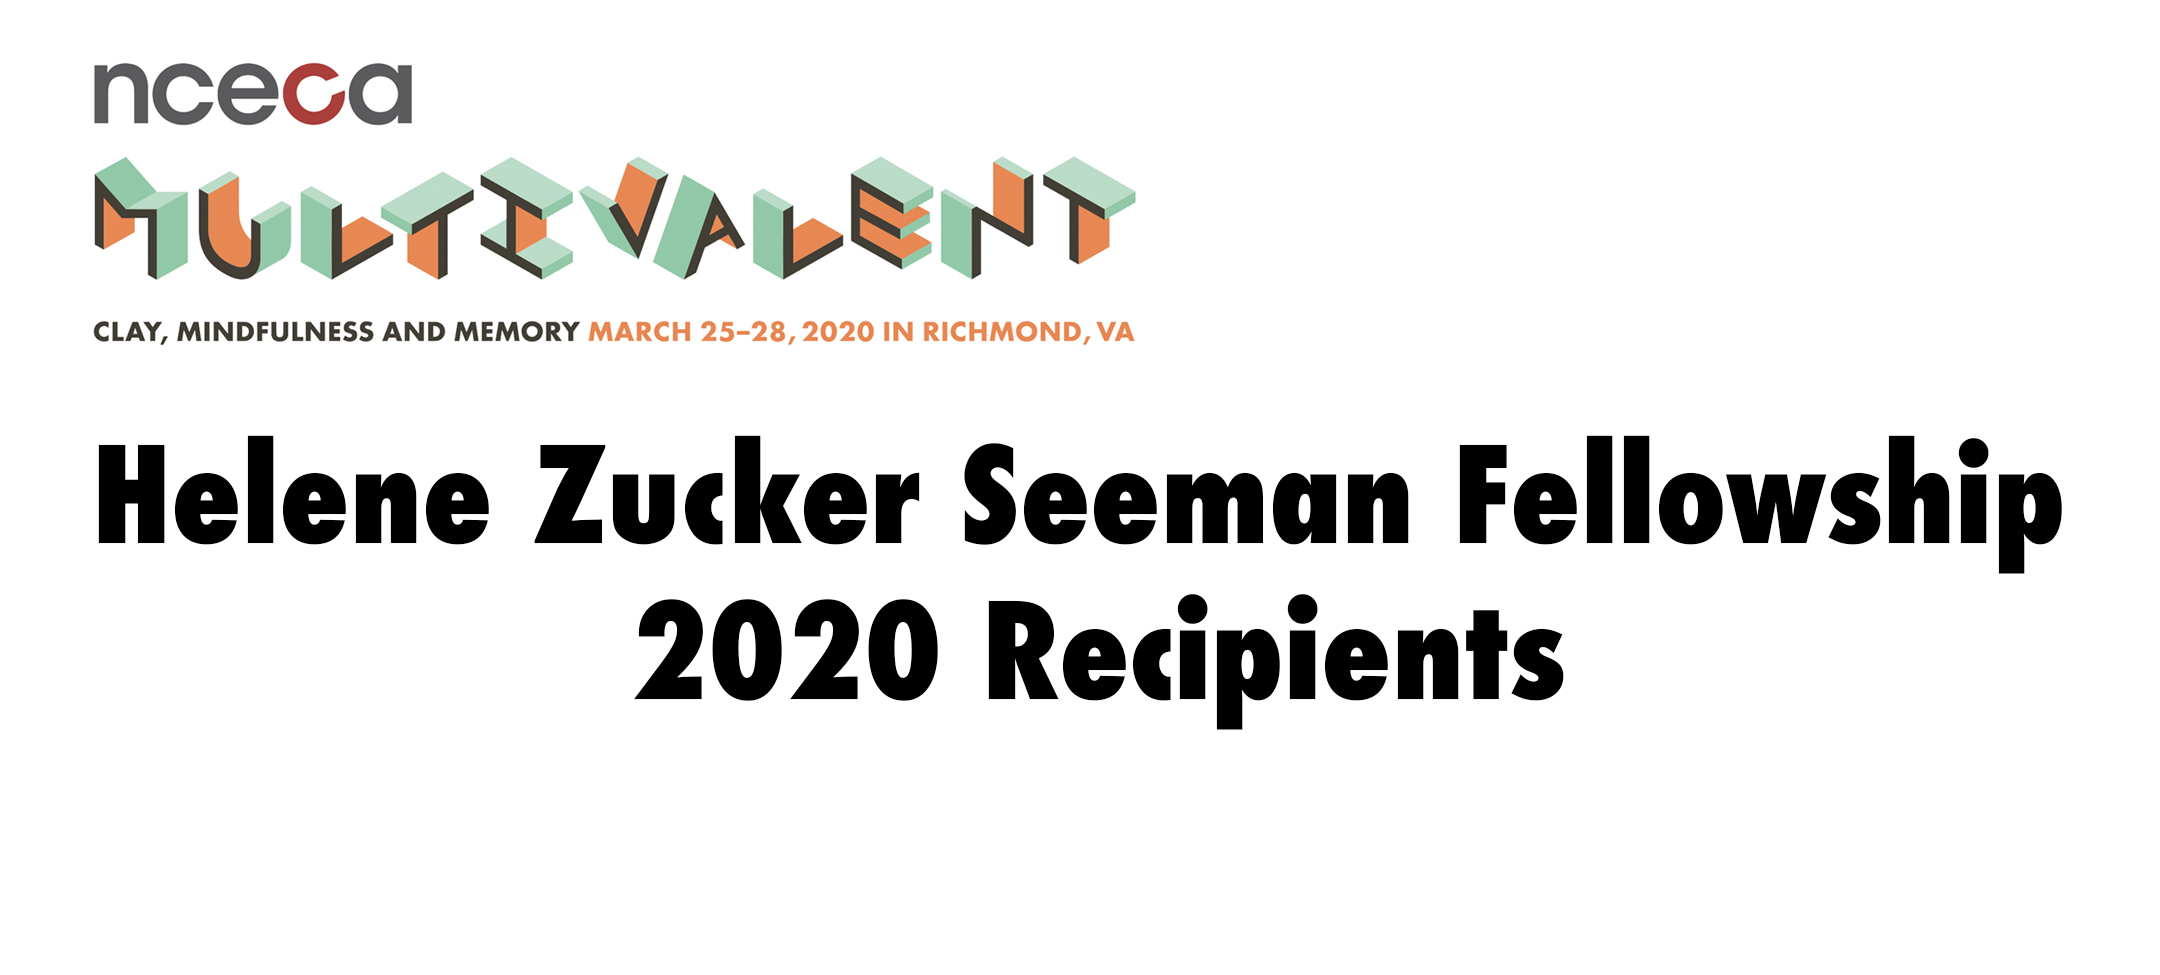 Helene Zucker Seeman Fellowship 2020 Recipients